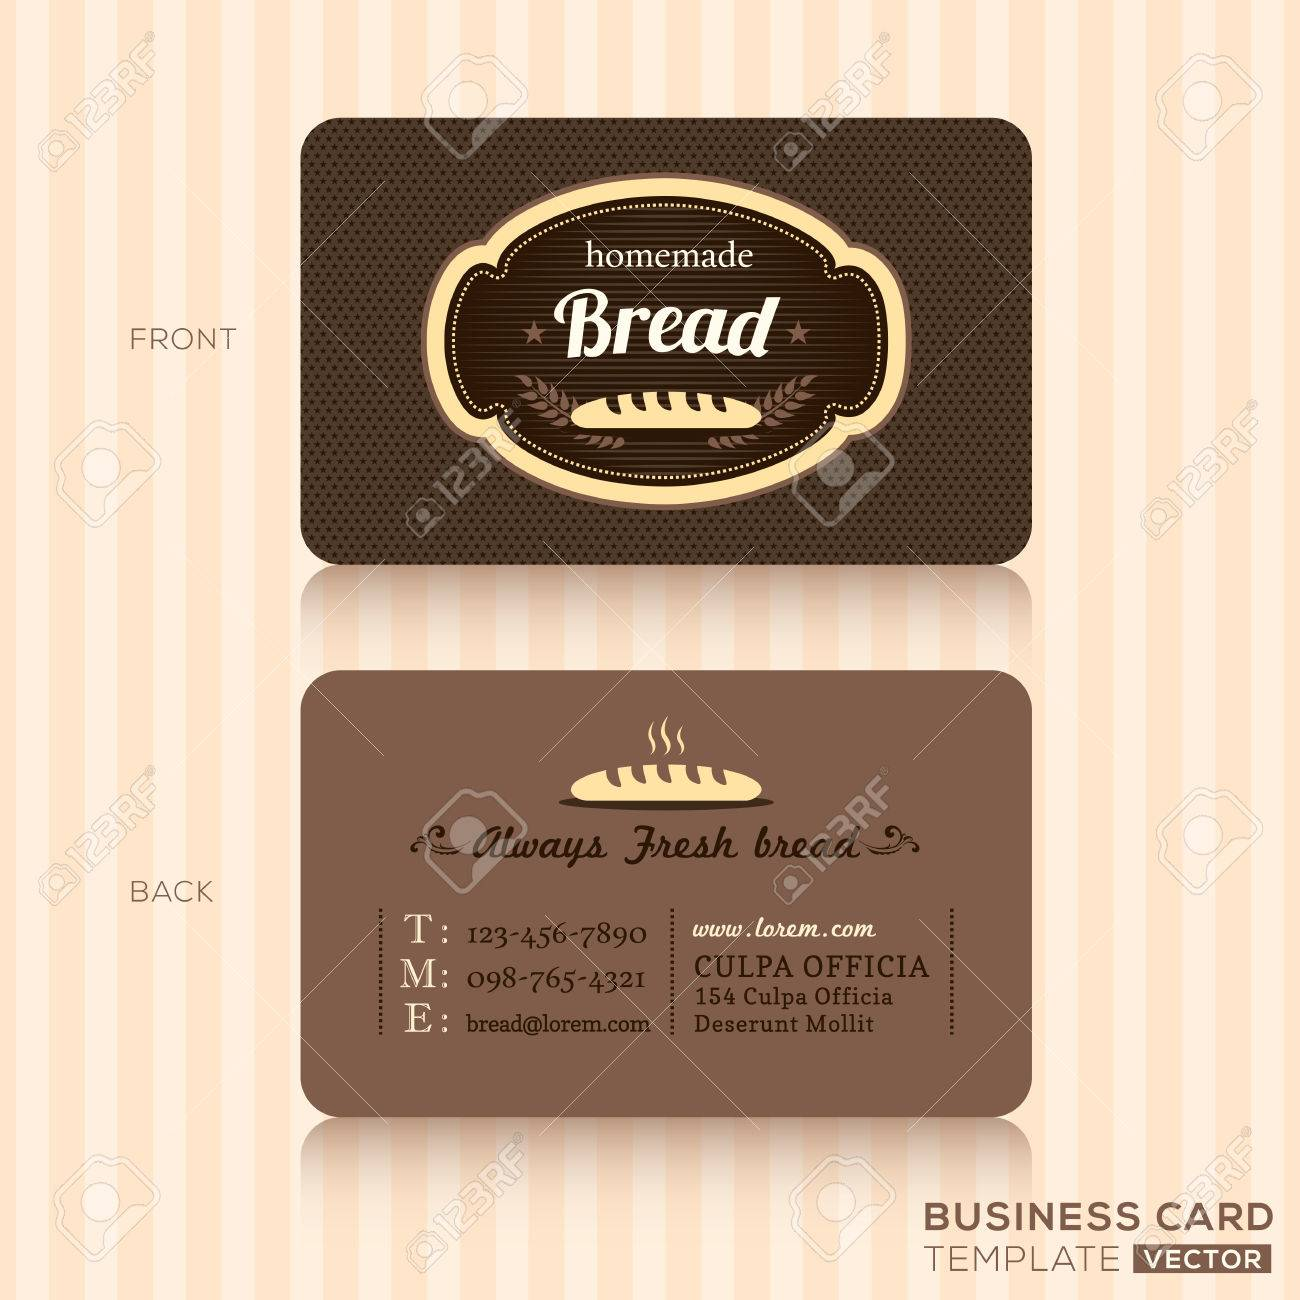 Bakery house business card design template royalty free cliparts bakery house business card design template stock vector 25189842 wajeb Choice Image